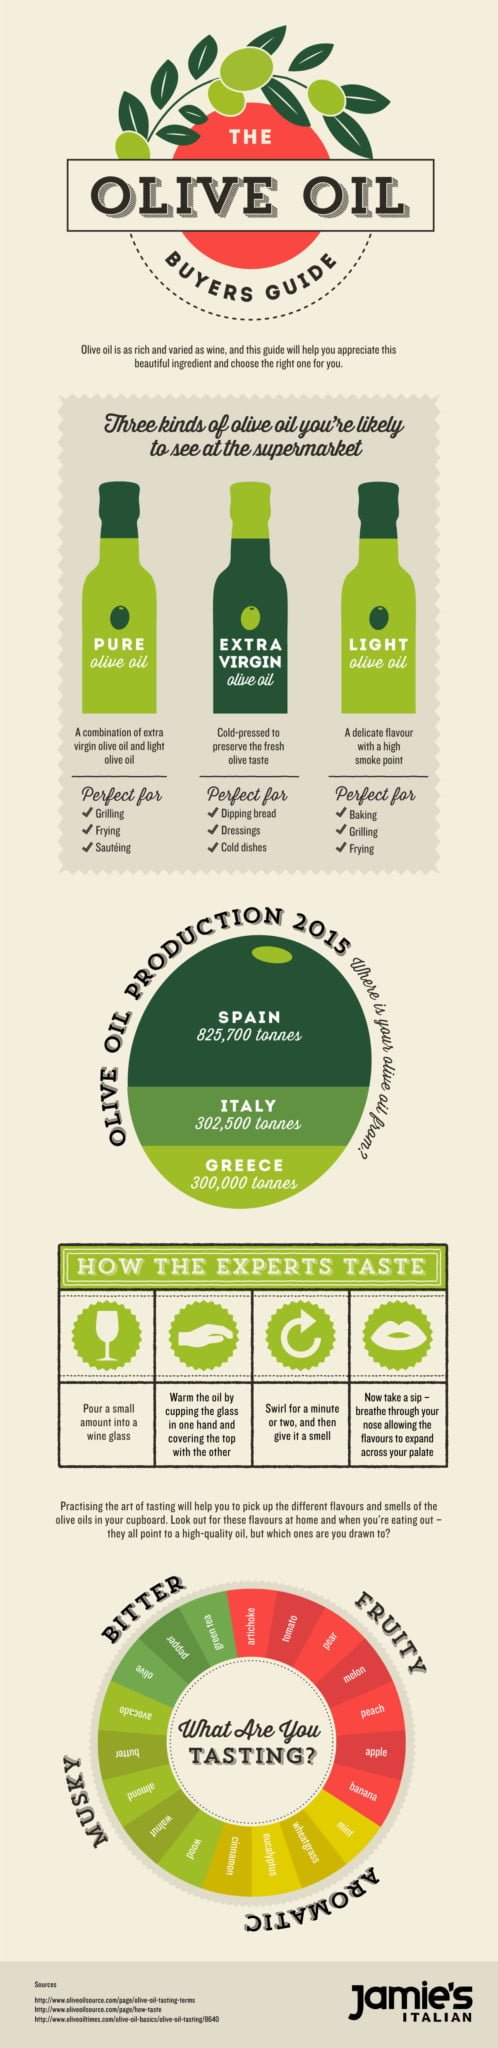 jamies-italian-olive-oil-buyers-guide